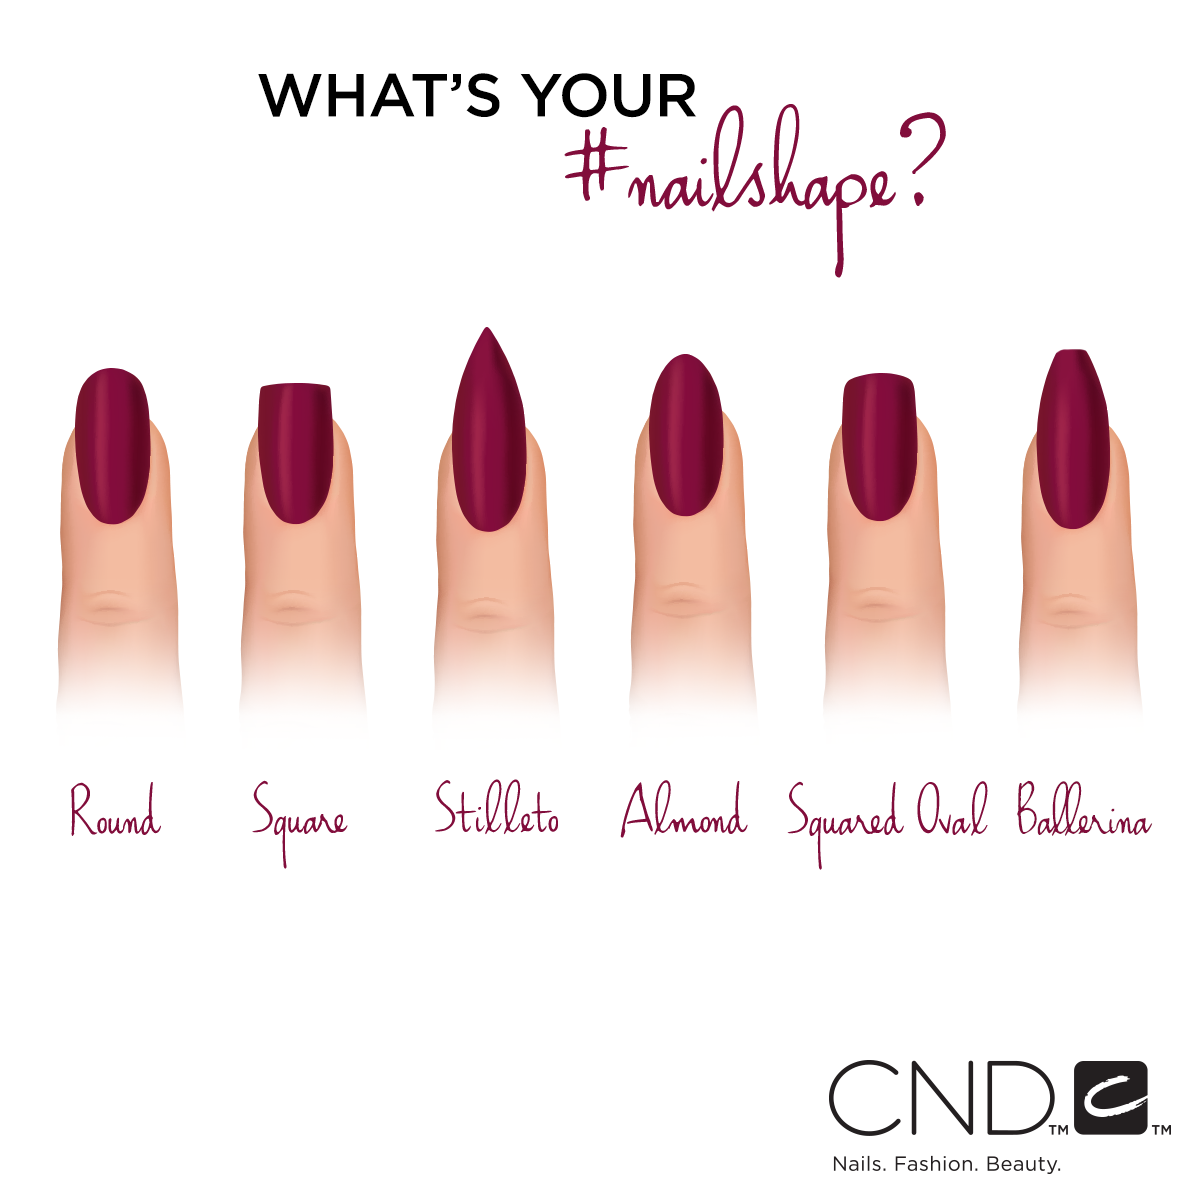 Which nail shape is your favorite? #CND https://t.co/emt2WkyWny